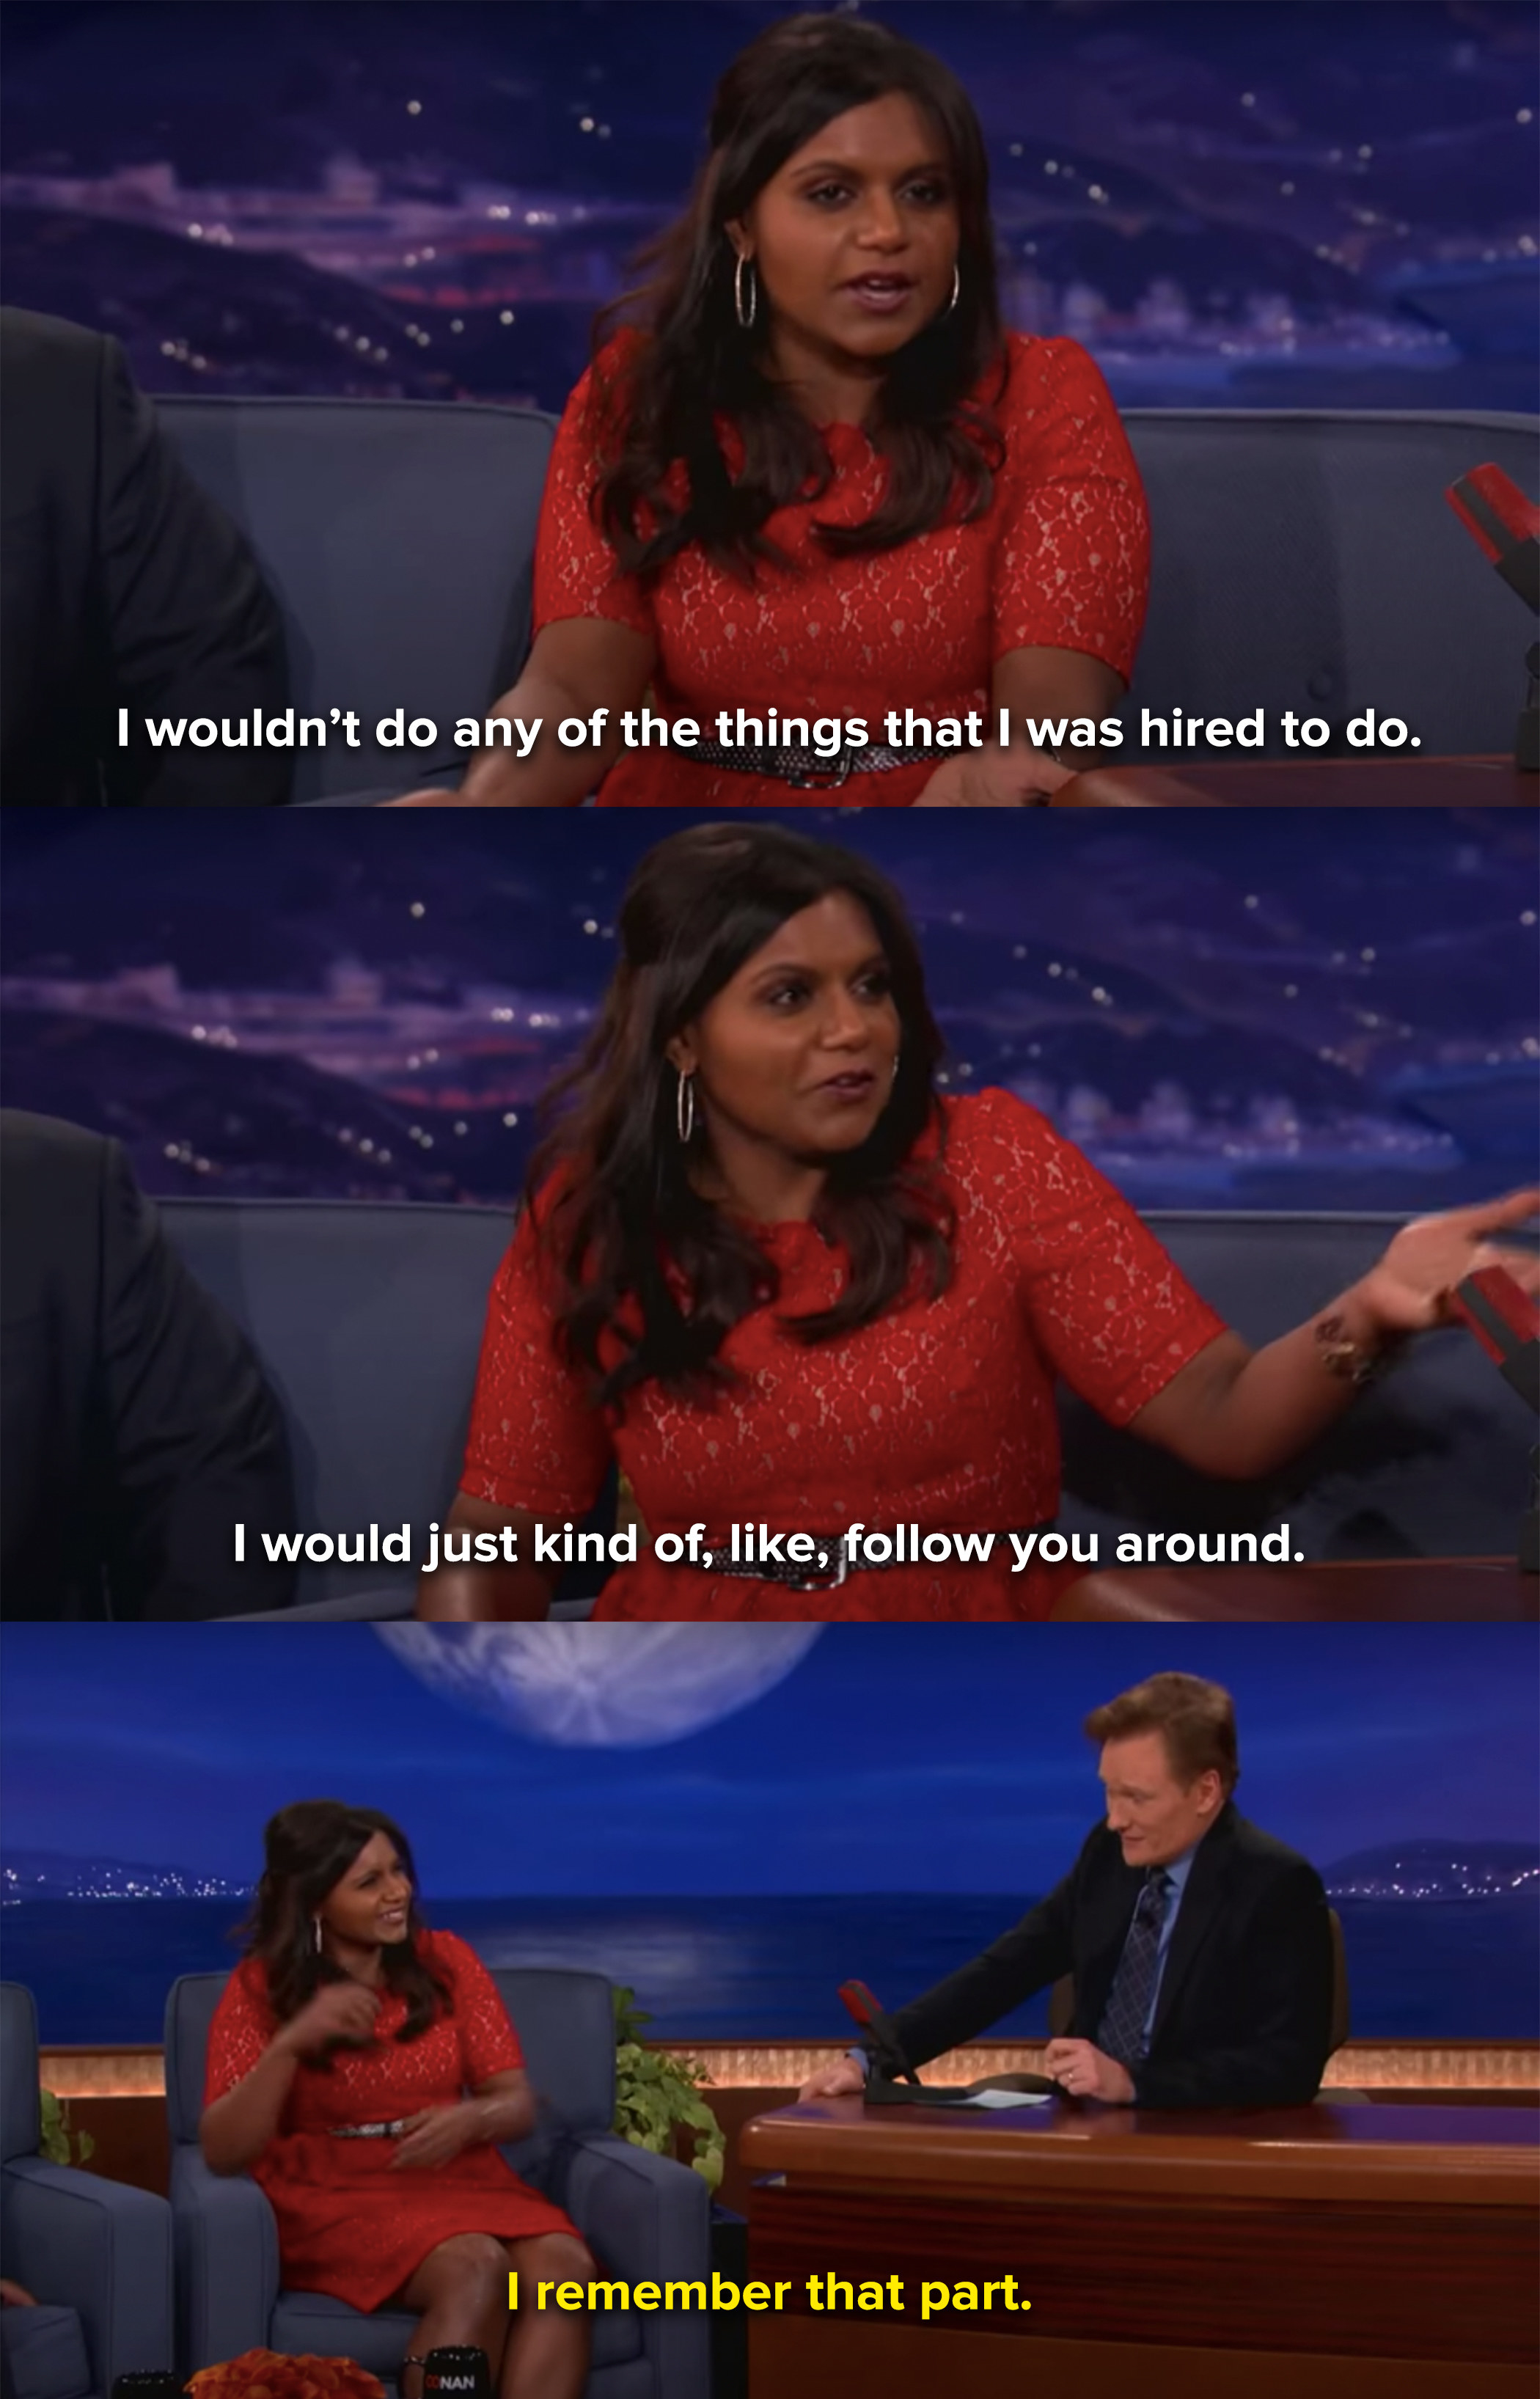 Mindy tells Conan that she'd follow him around rather than doing her work